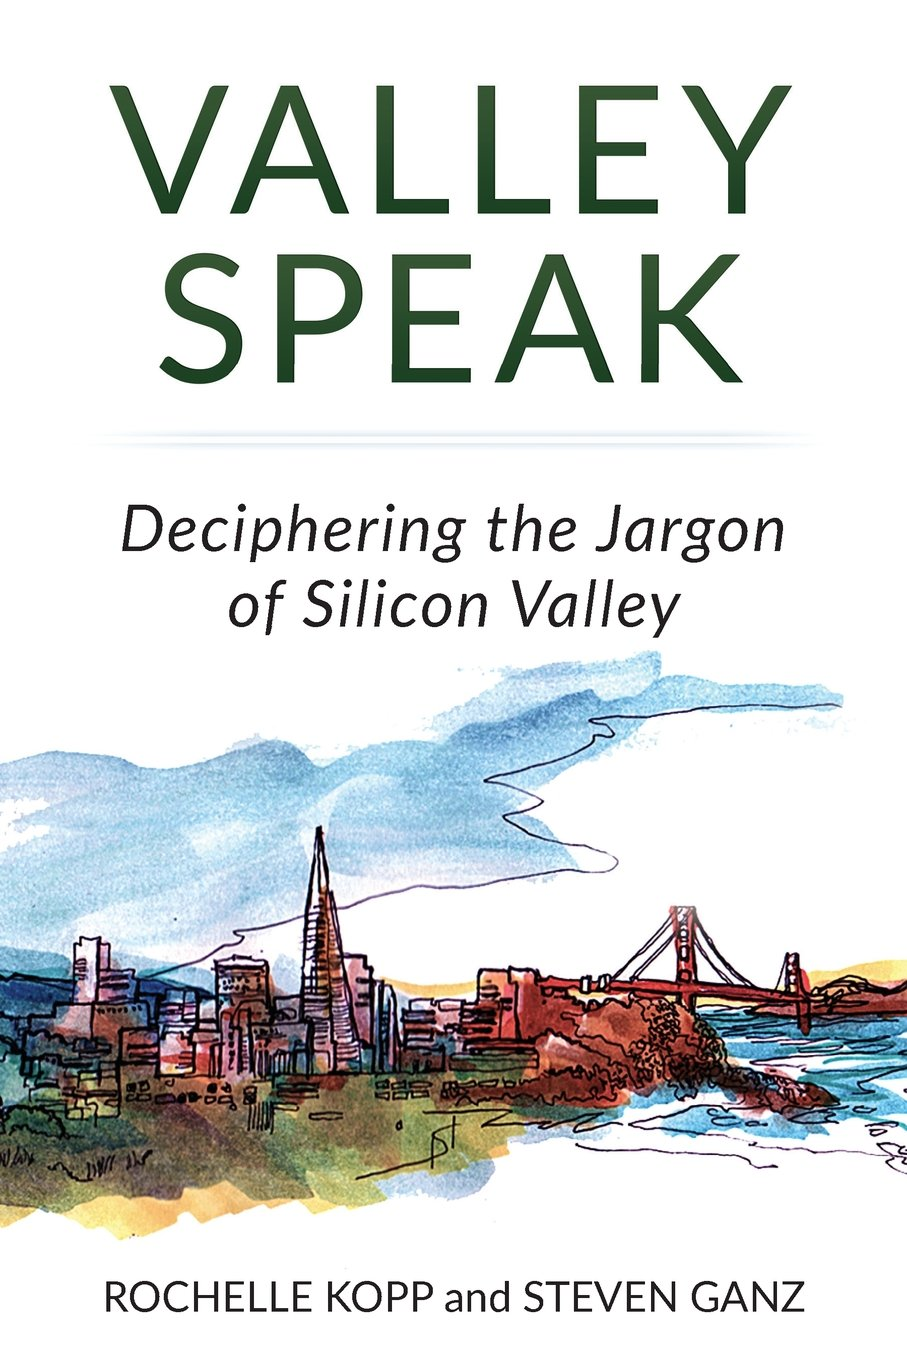 Valley Speak: Deciphering the Jargon of Silicon Valley by Genetius Publishing